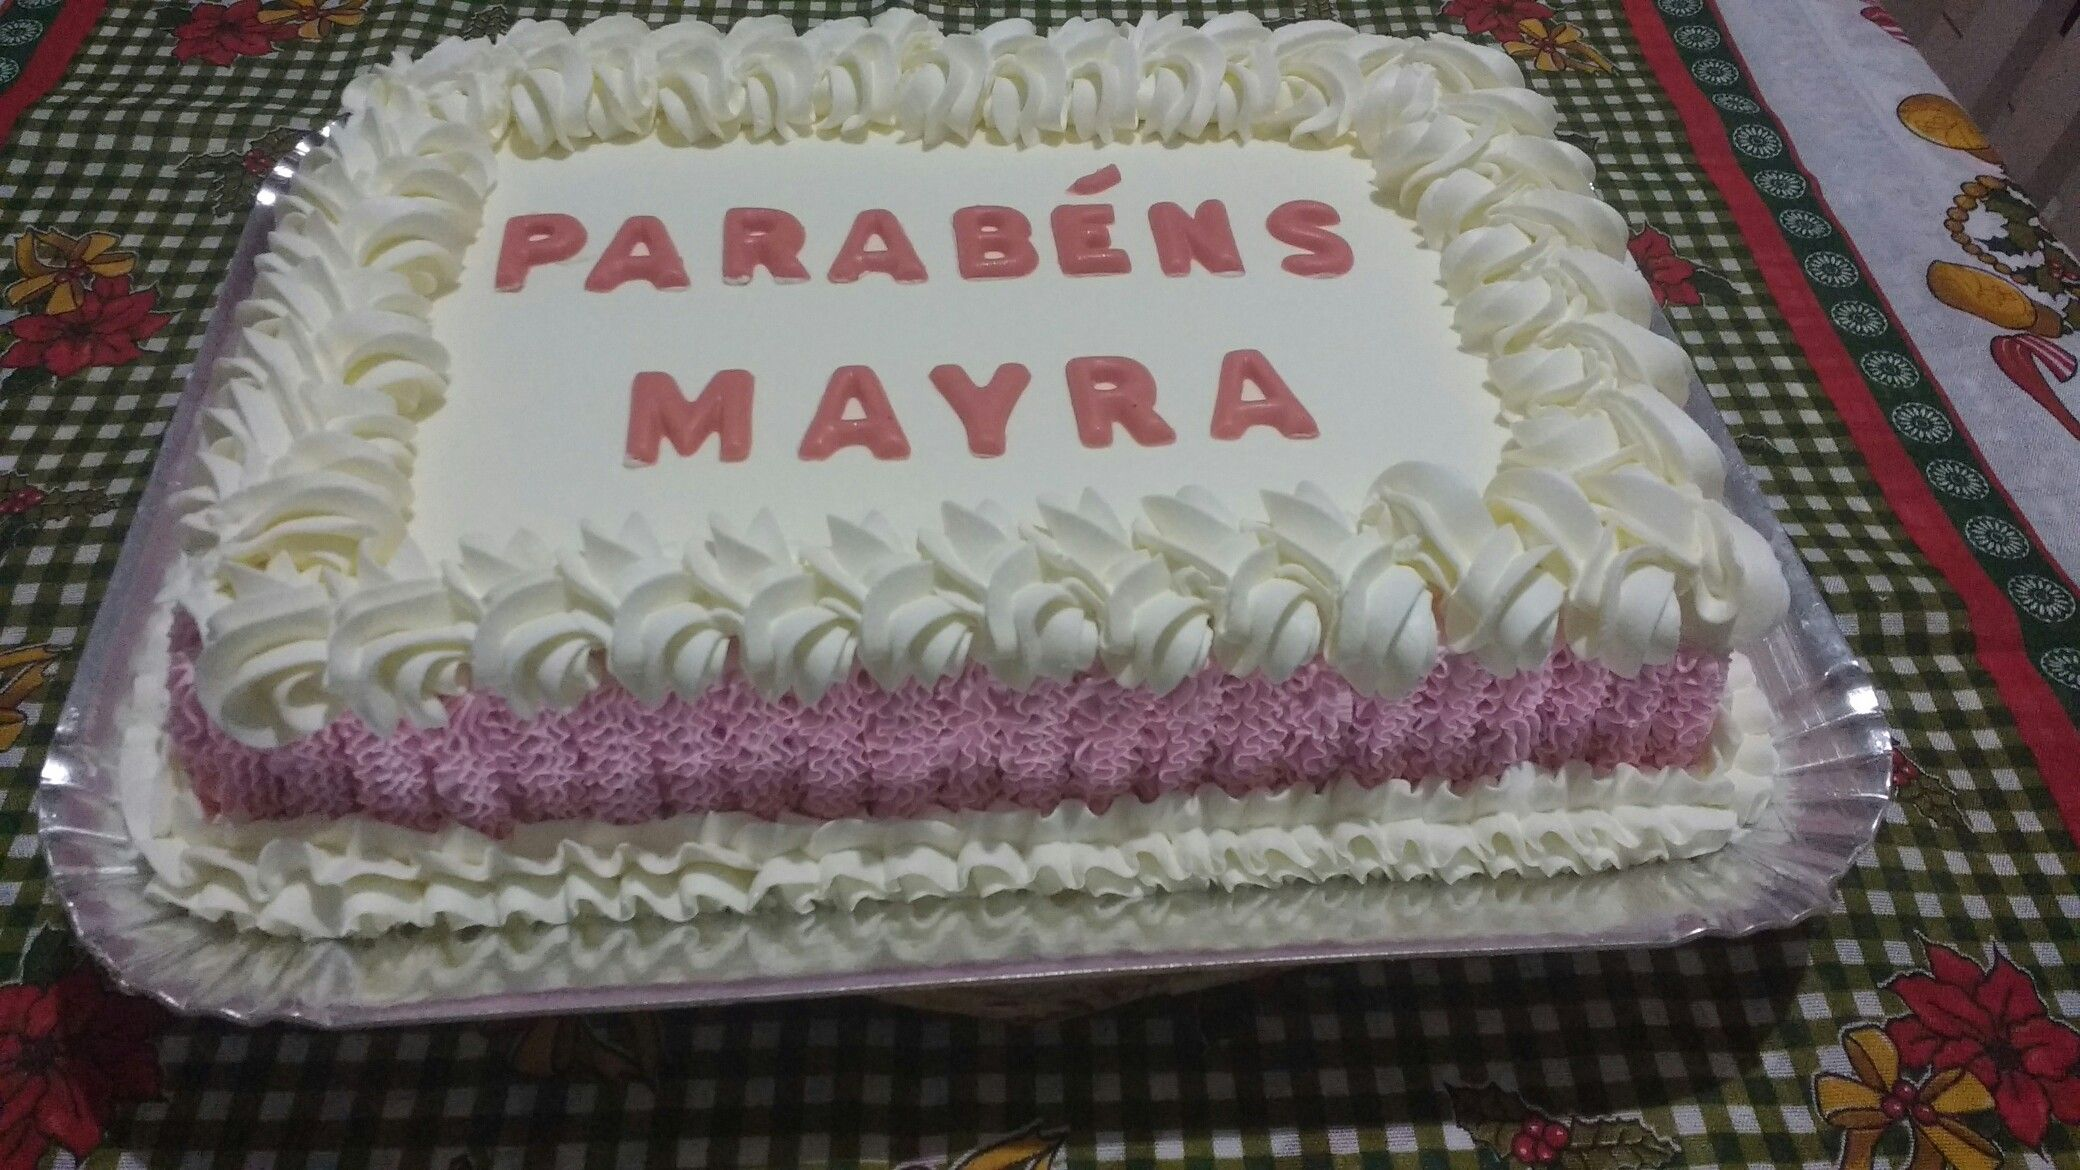 Bolo Decorado Com Chantilly Branco E Rosa Com Letras Em Chocolate